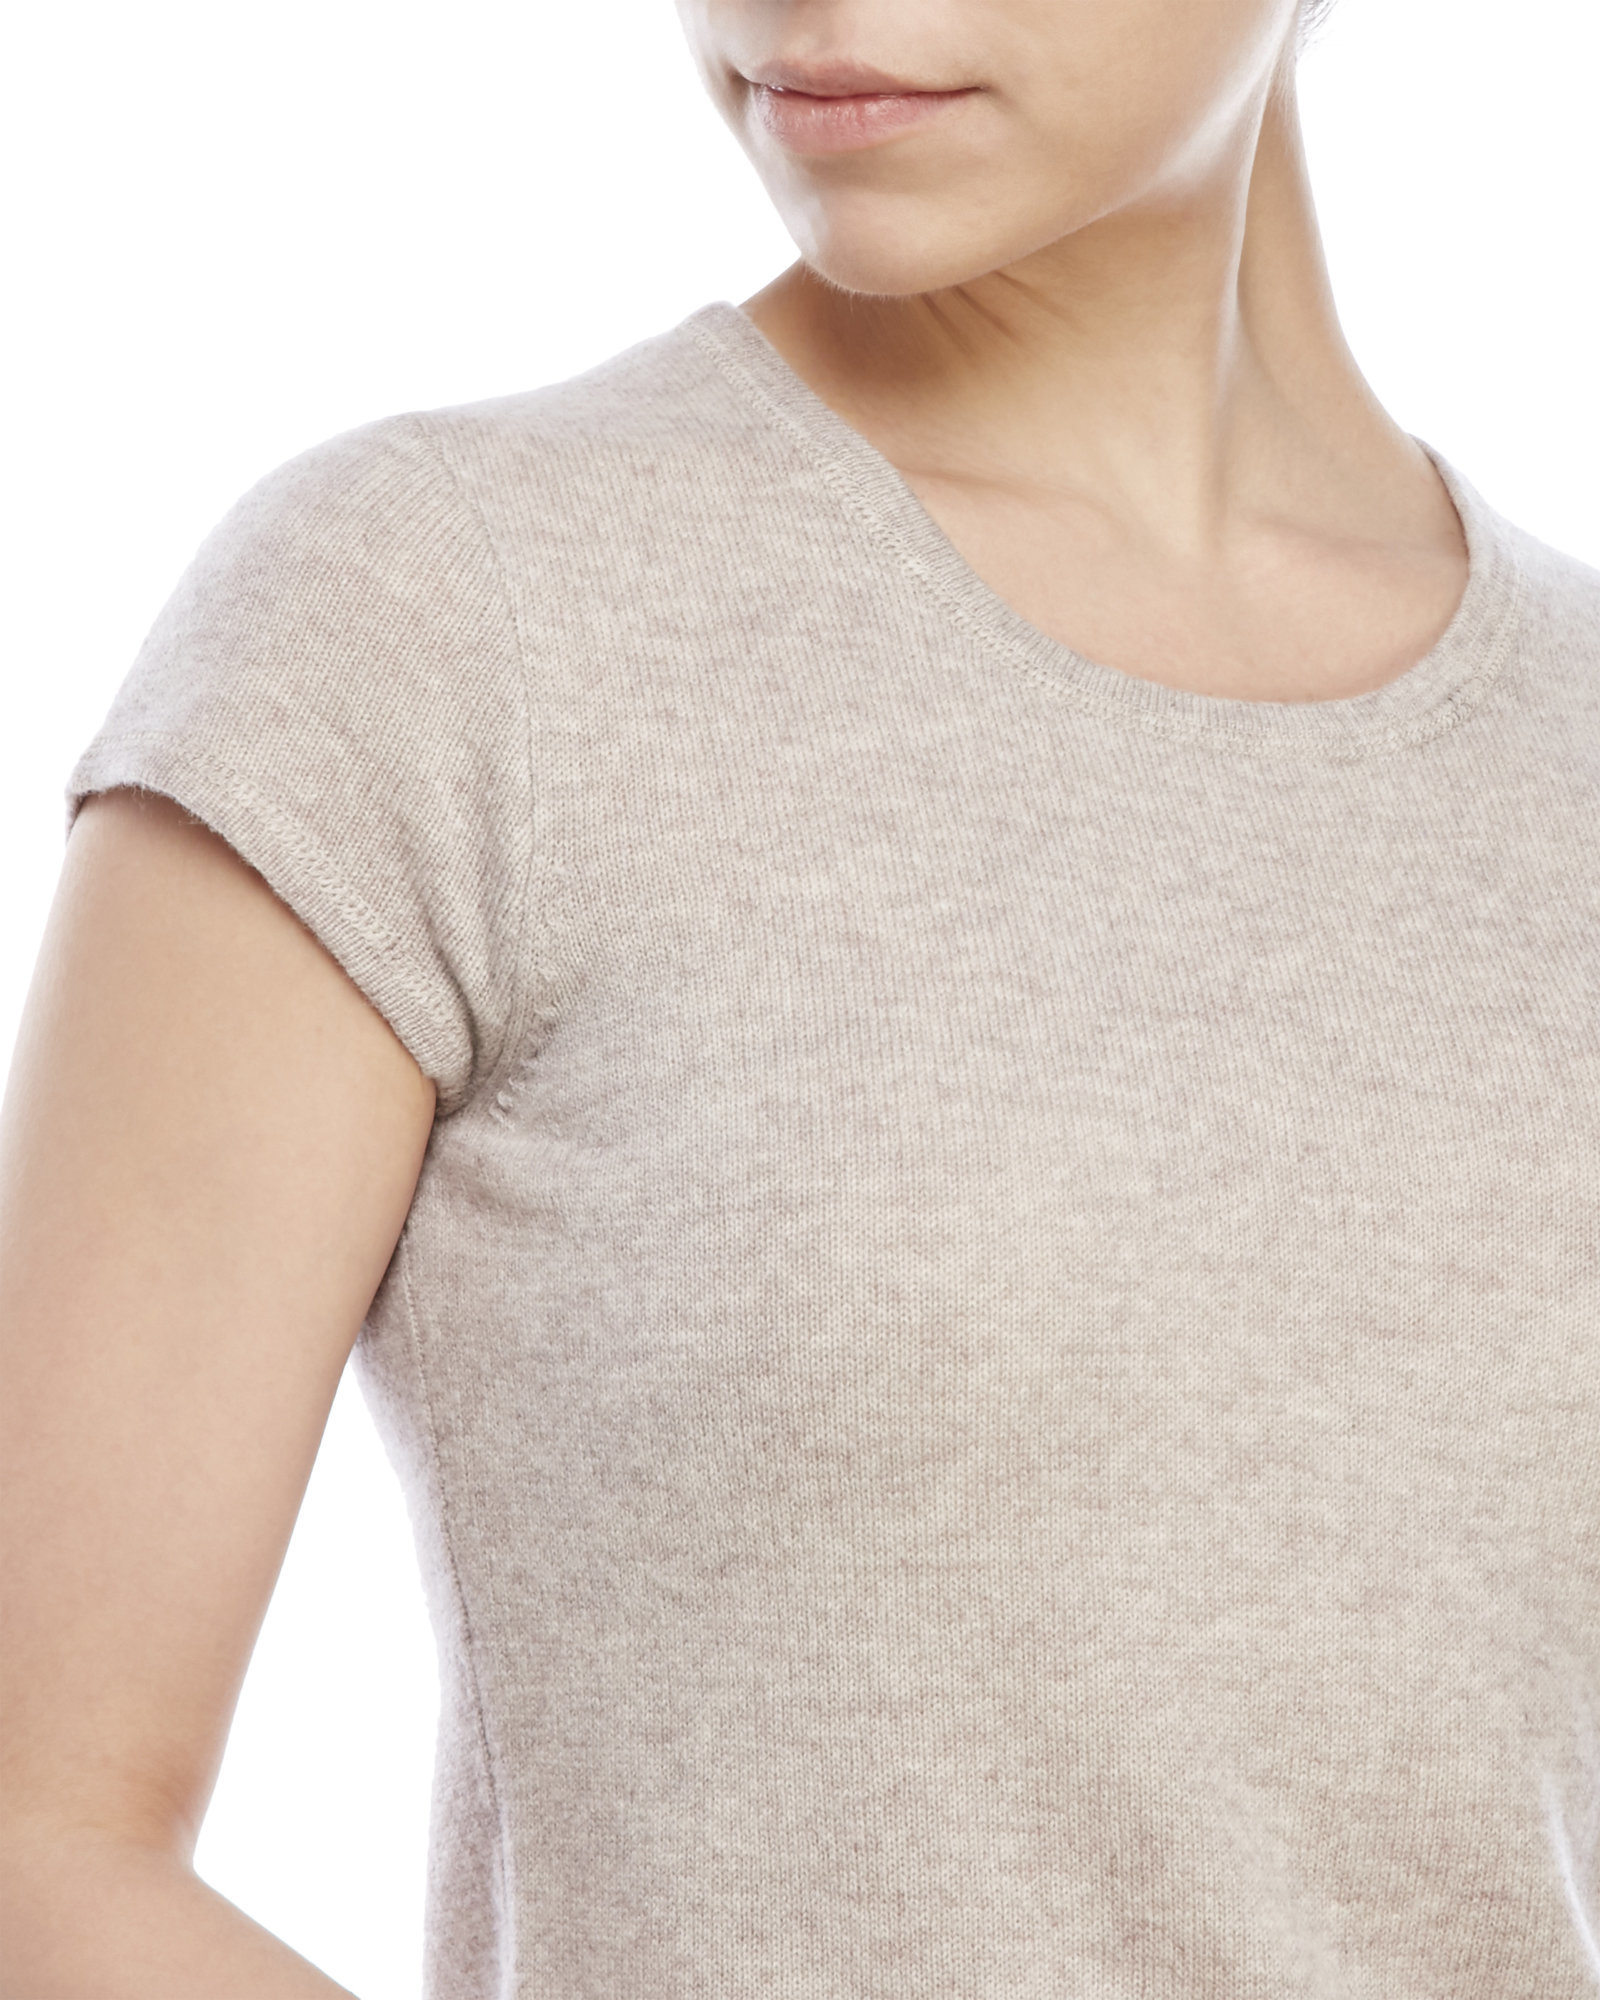 Ply cashmere Short Sleeve Cashmere Sweater in Natural | Lyst